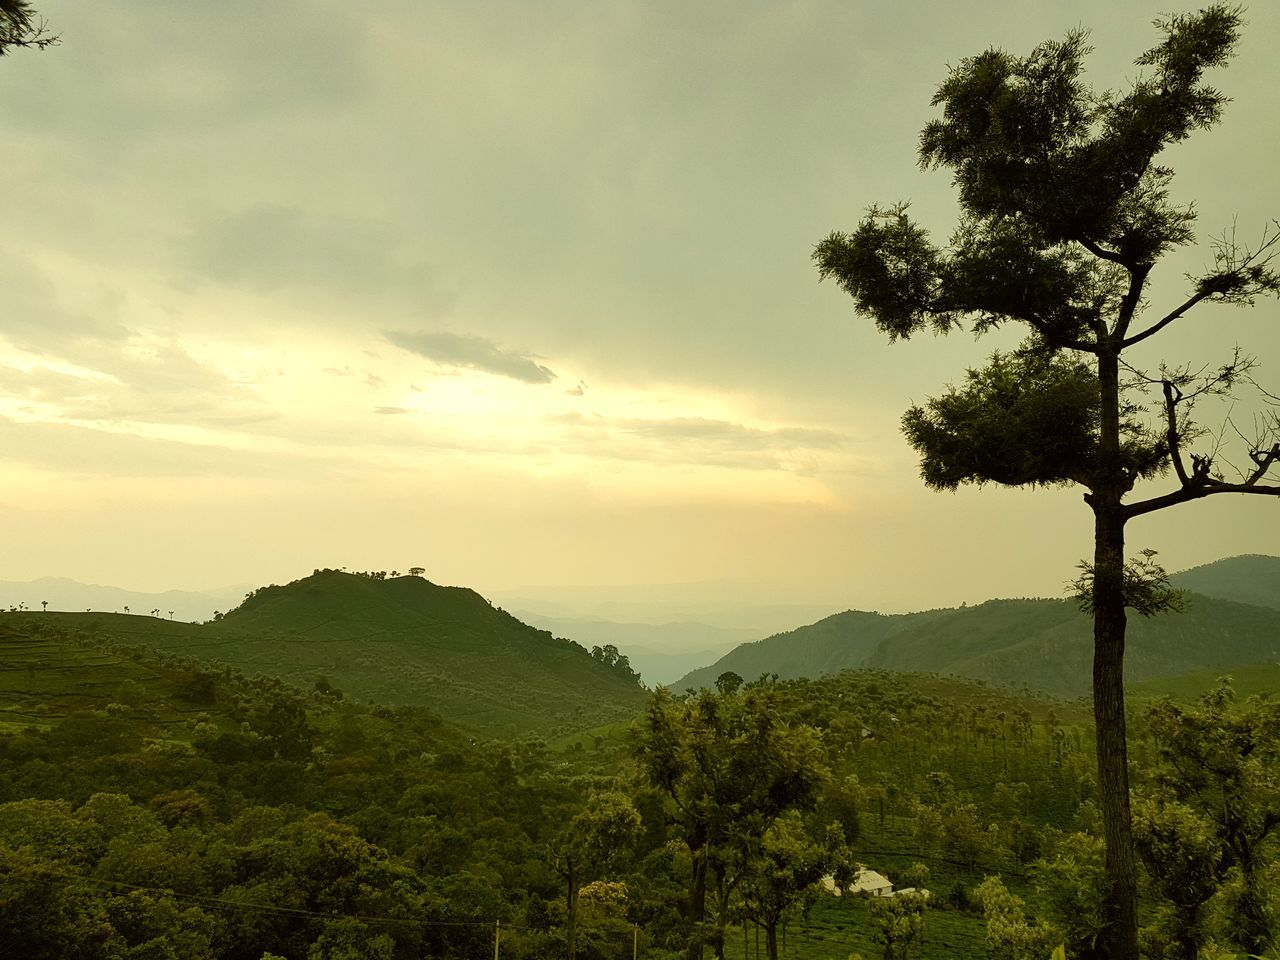 tree, nature, mountain, beauty in nature, landscape, sky, growth, scenics, no people, outdoors, day